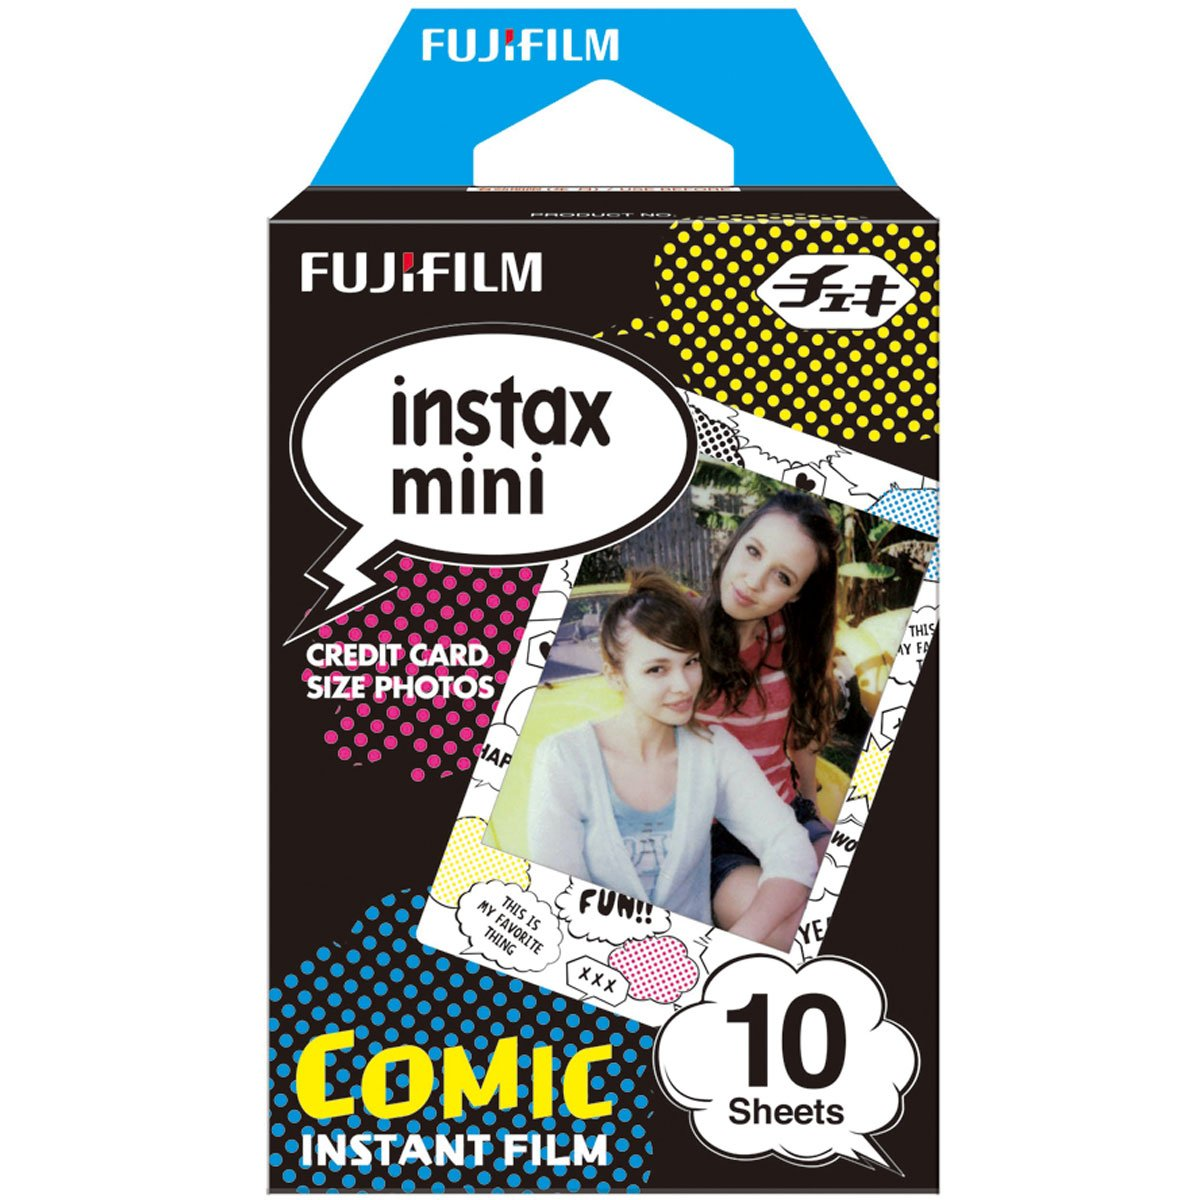 FUJIFILM INSTAX COLORFILM MINI GLOSSY COMIC